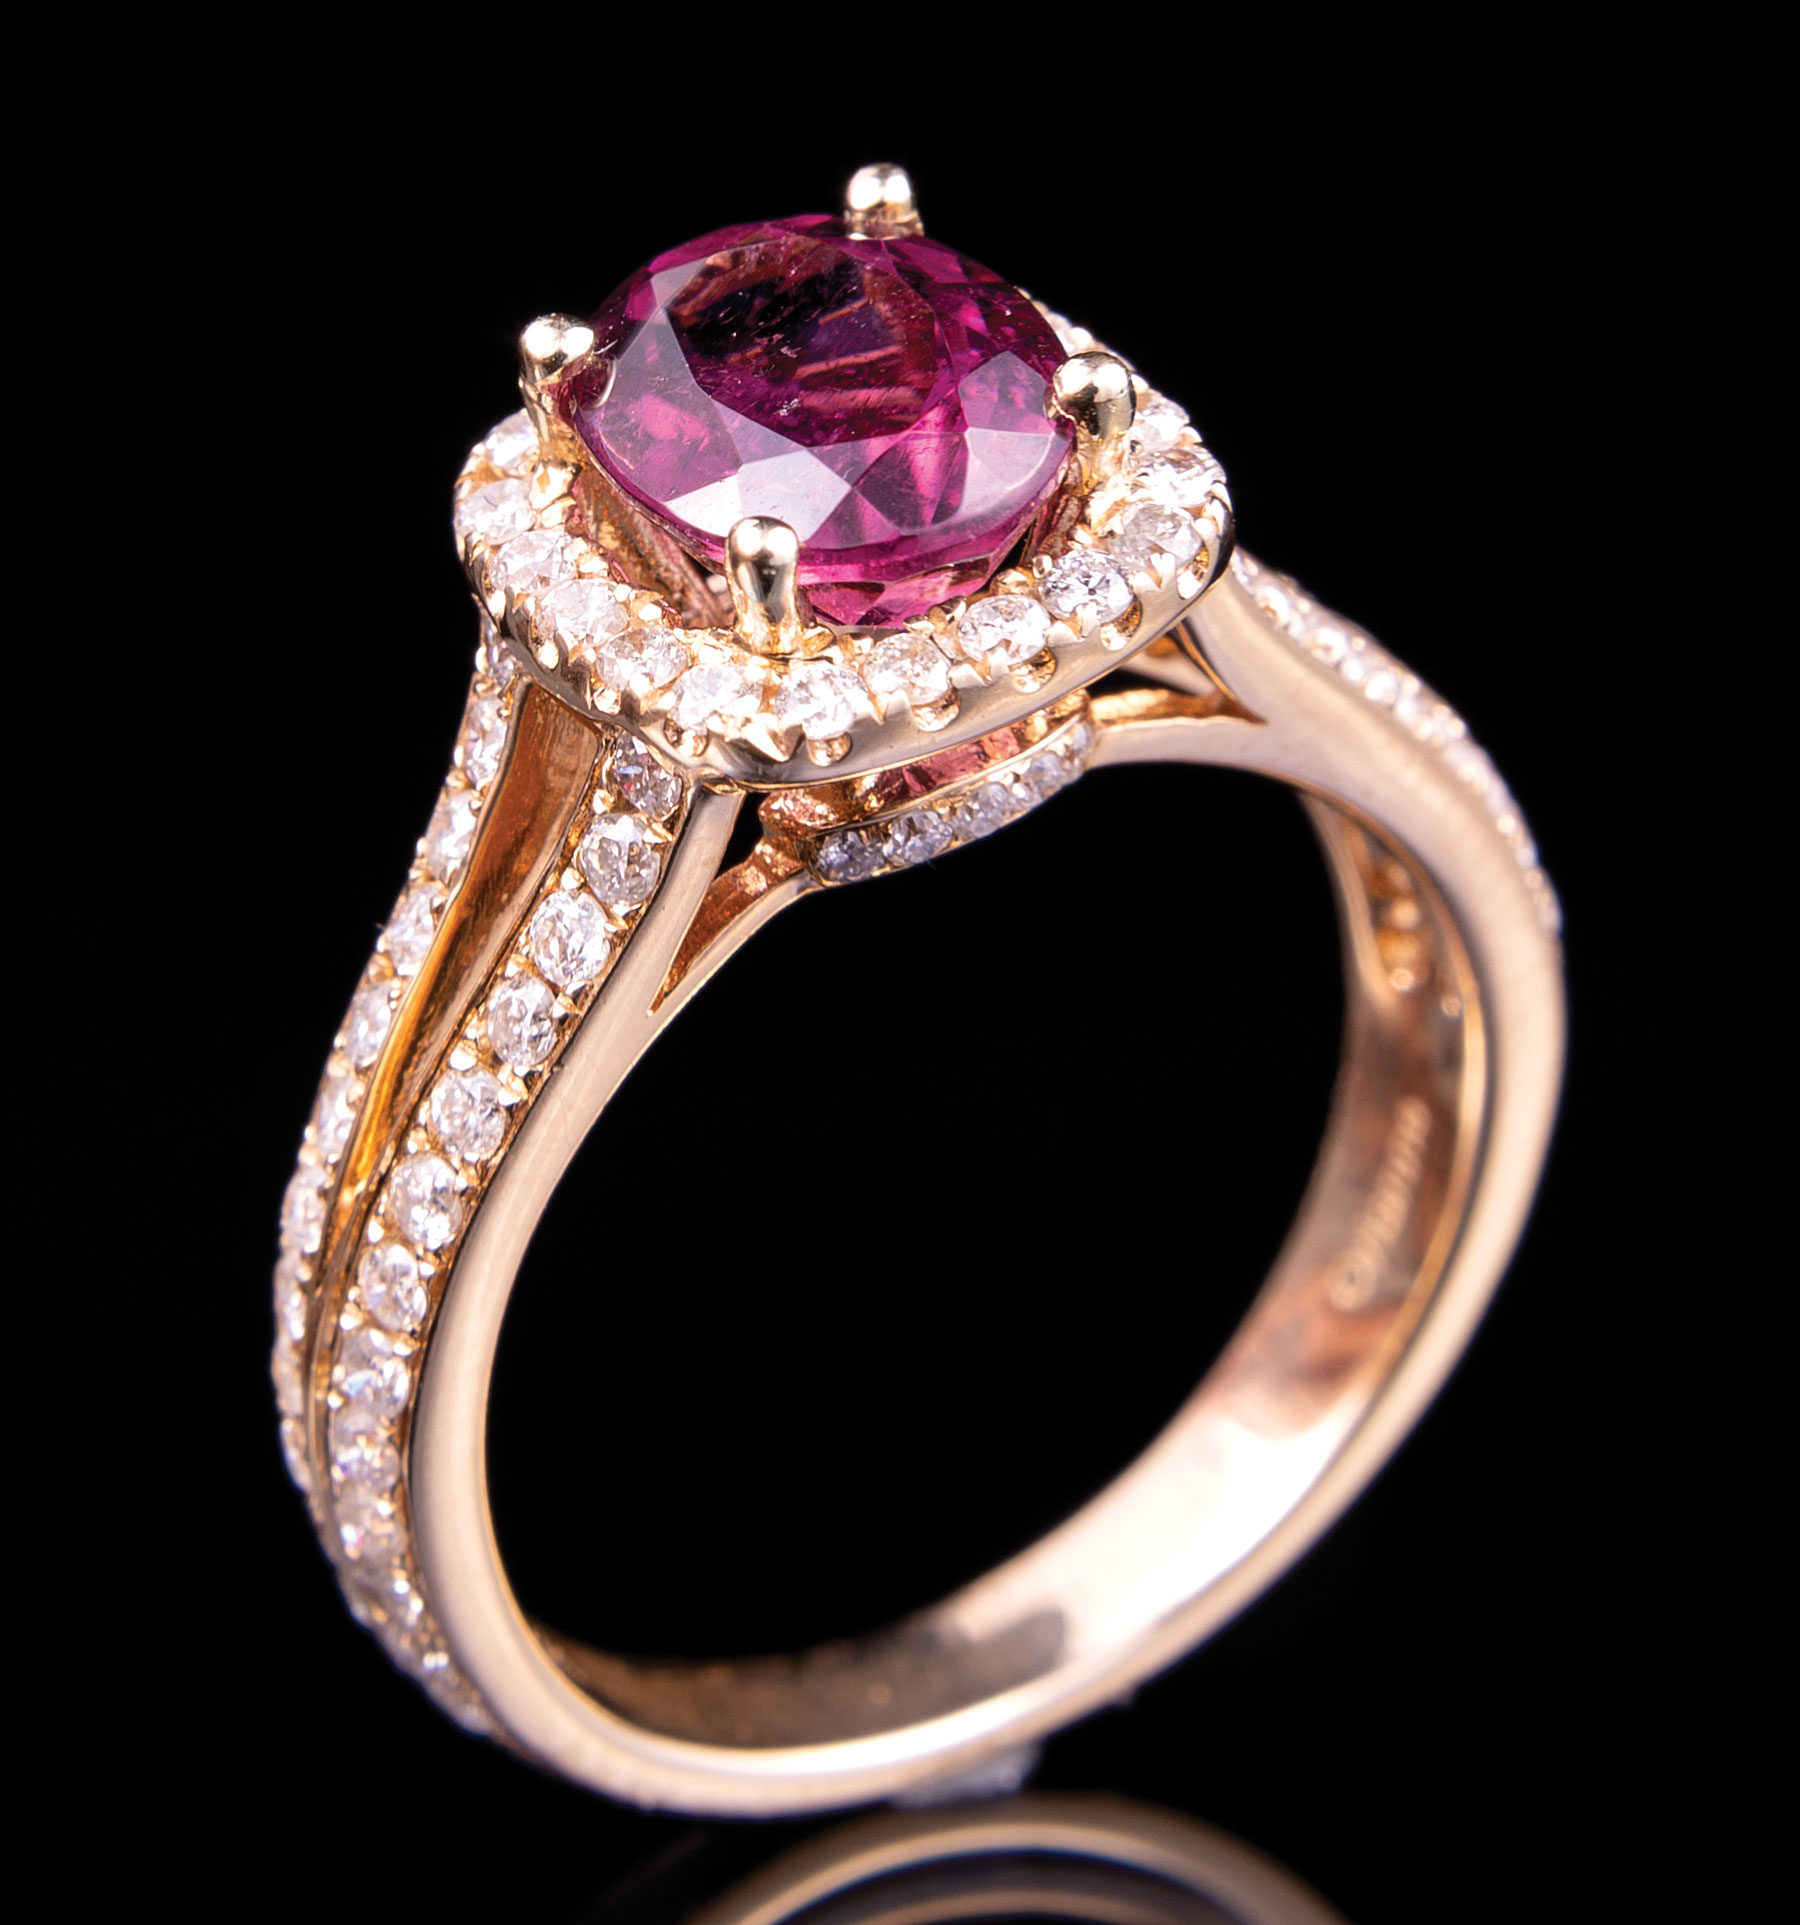 14 kt. Yellow Gold, Rubellite and Diamond Ring , prong set oval mixed cut rubellite, 8.50 x 6.80 x